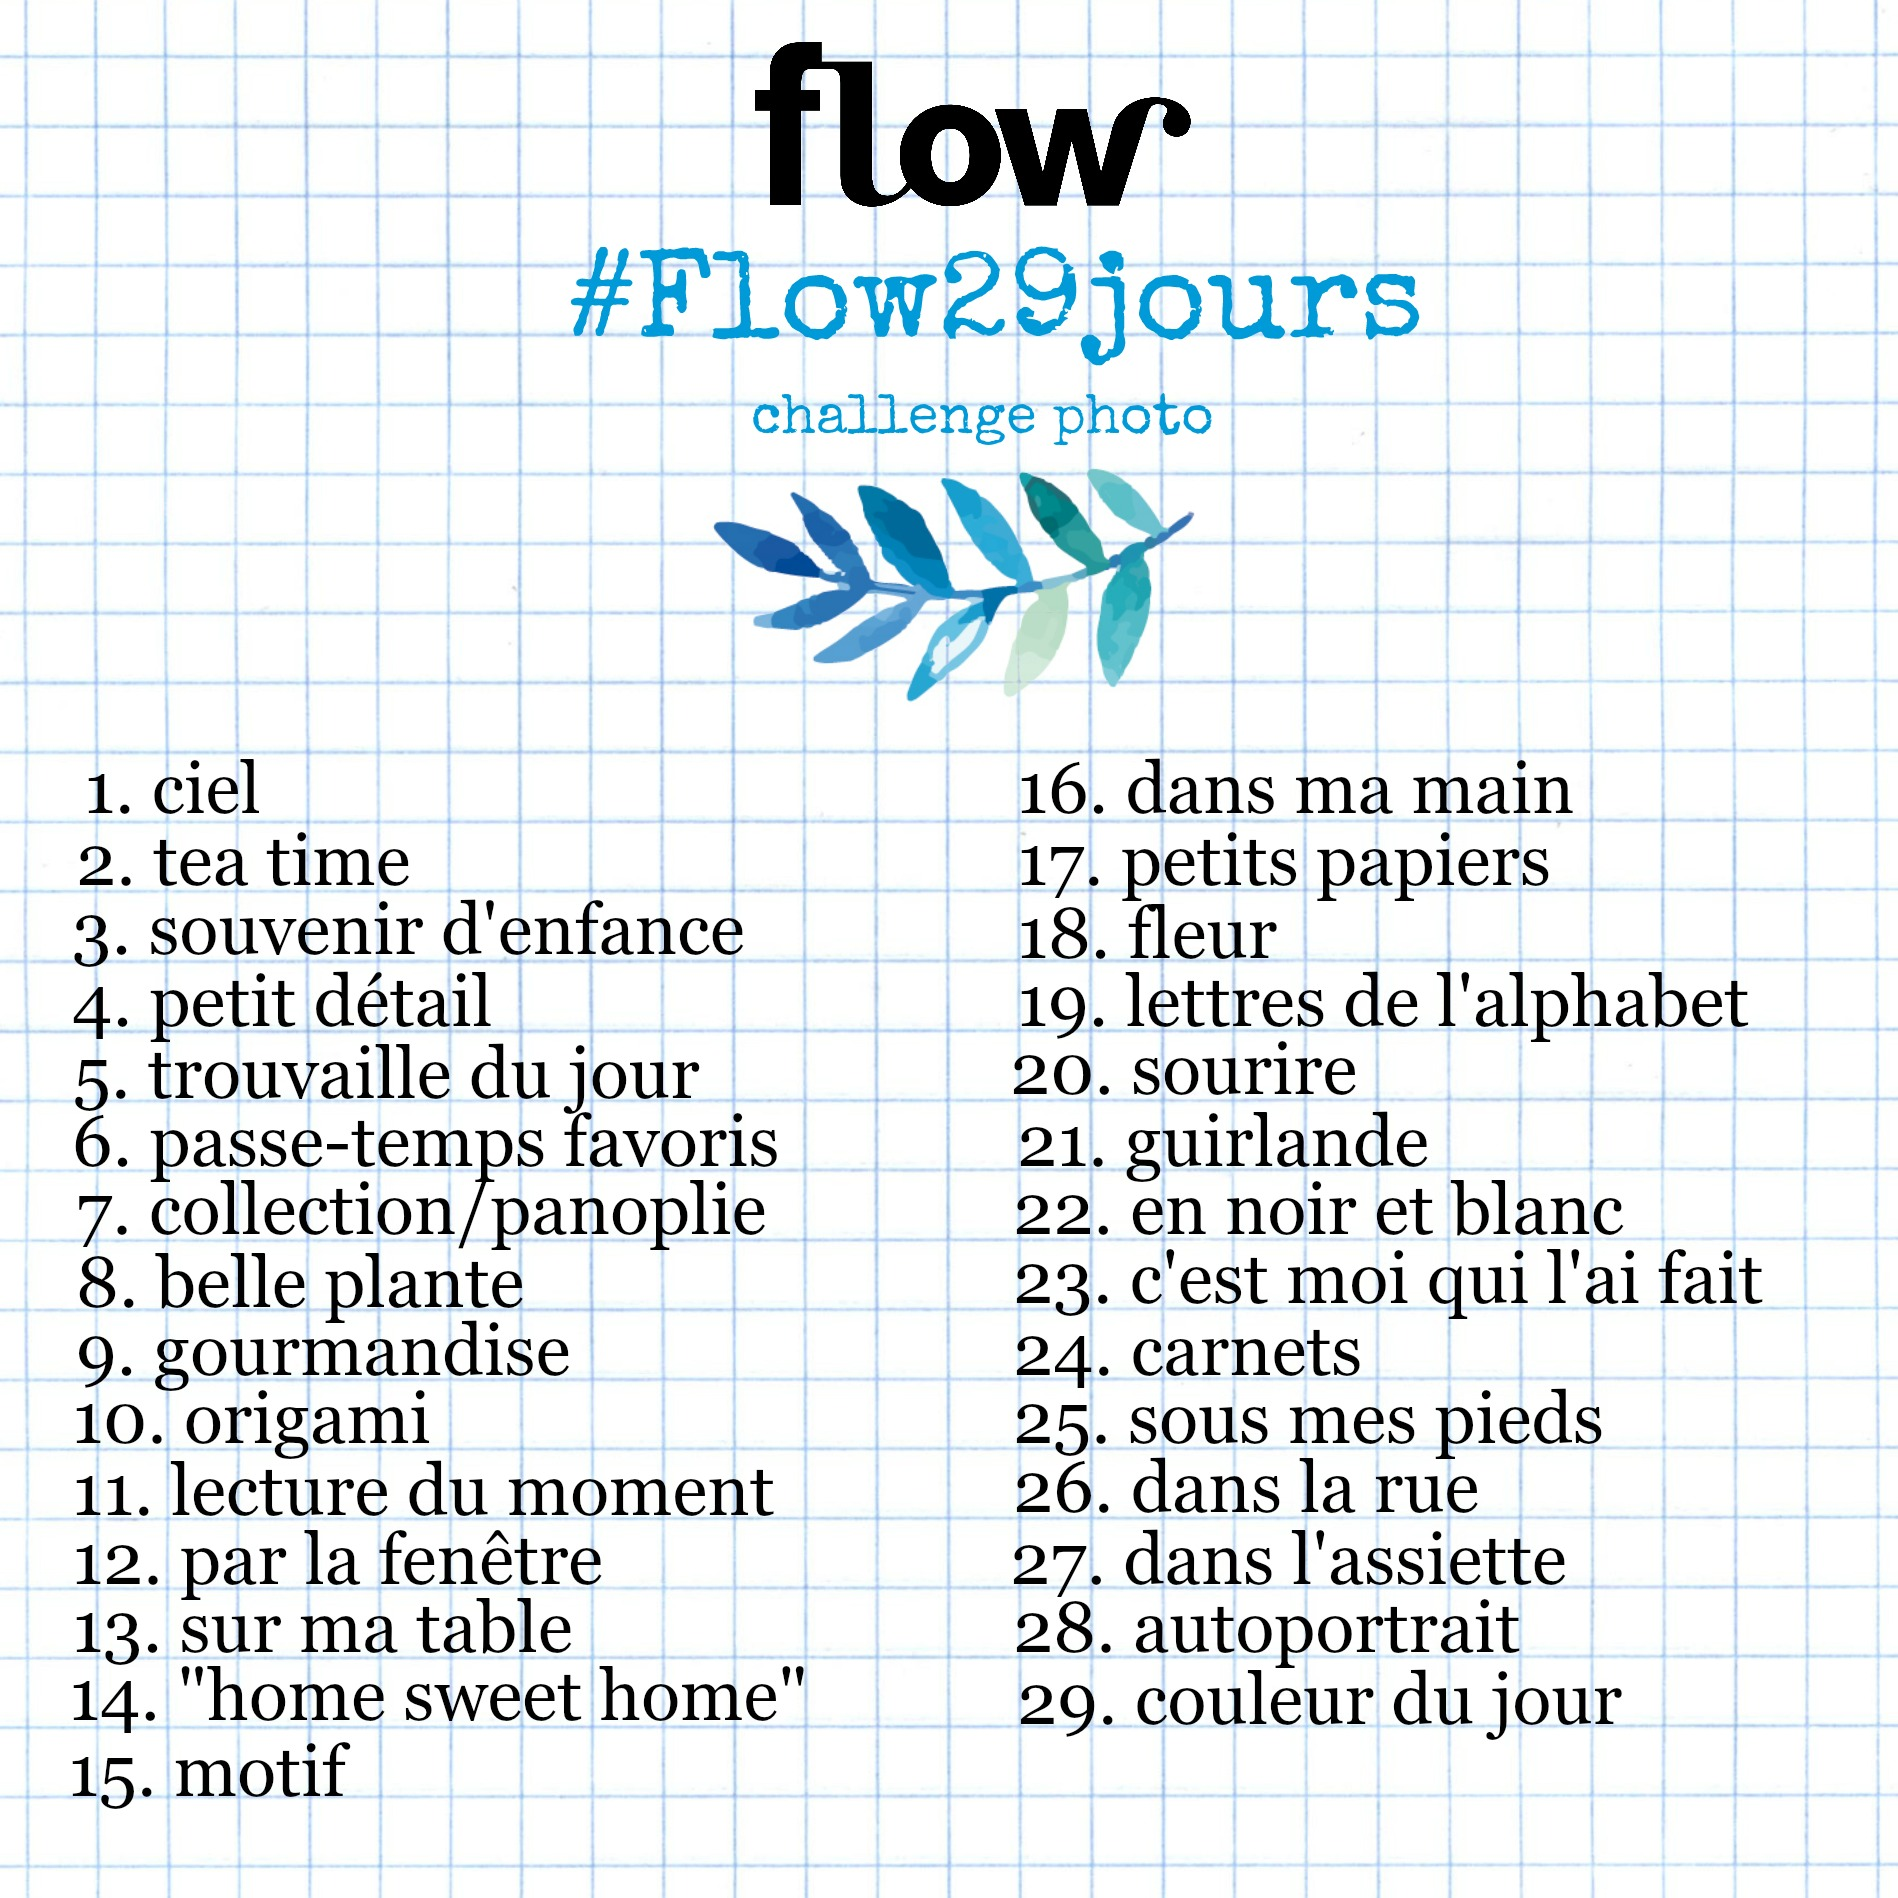 flow 29 jours challenge photo